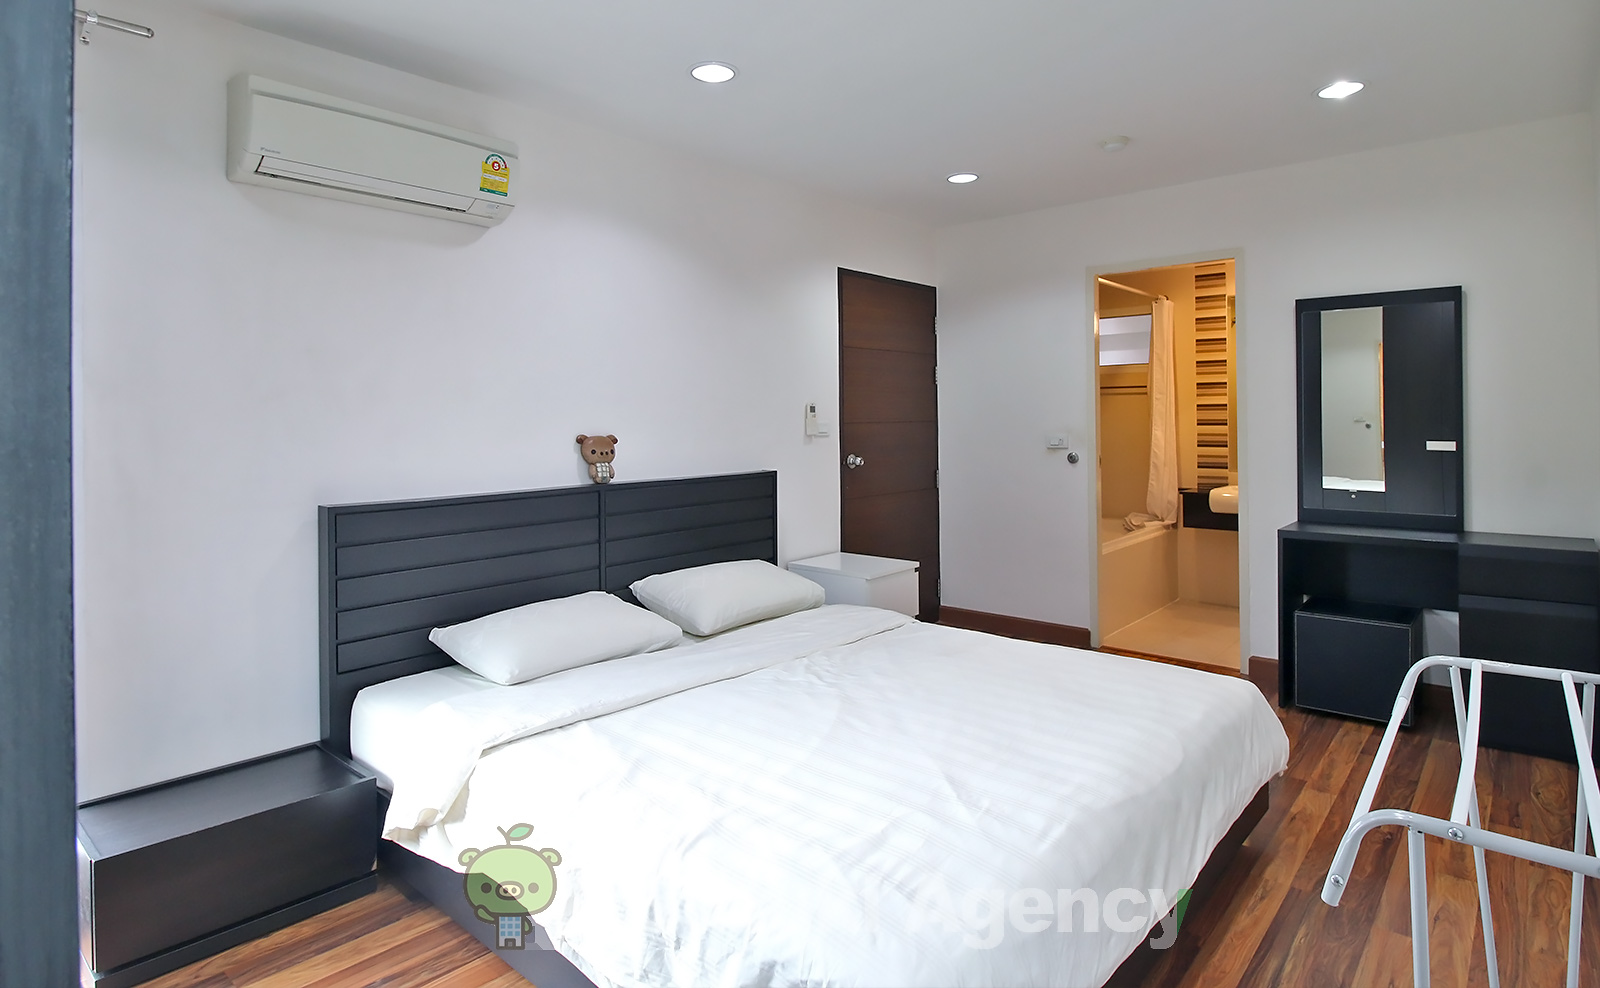 Natcha Residence:2Bed Room Photos No.8